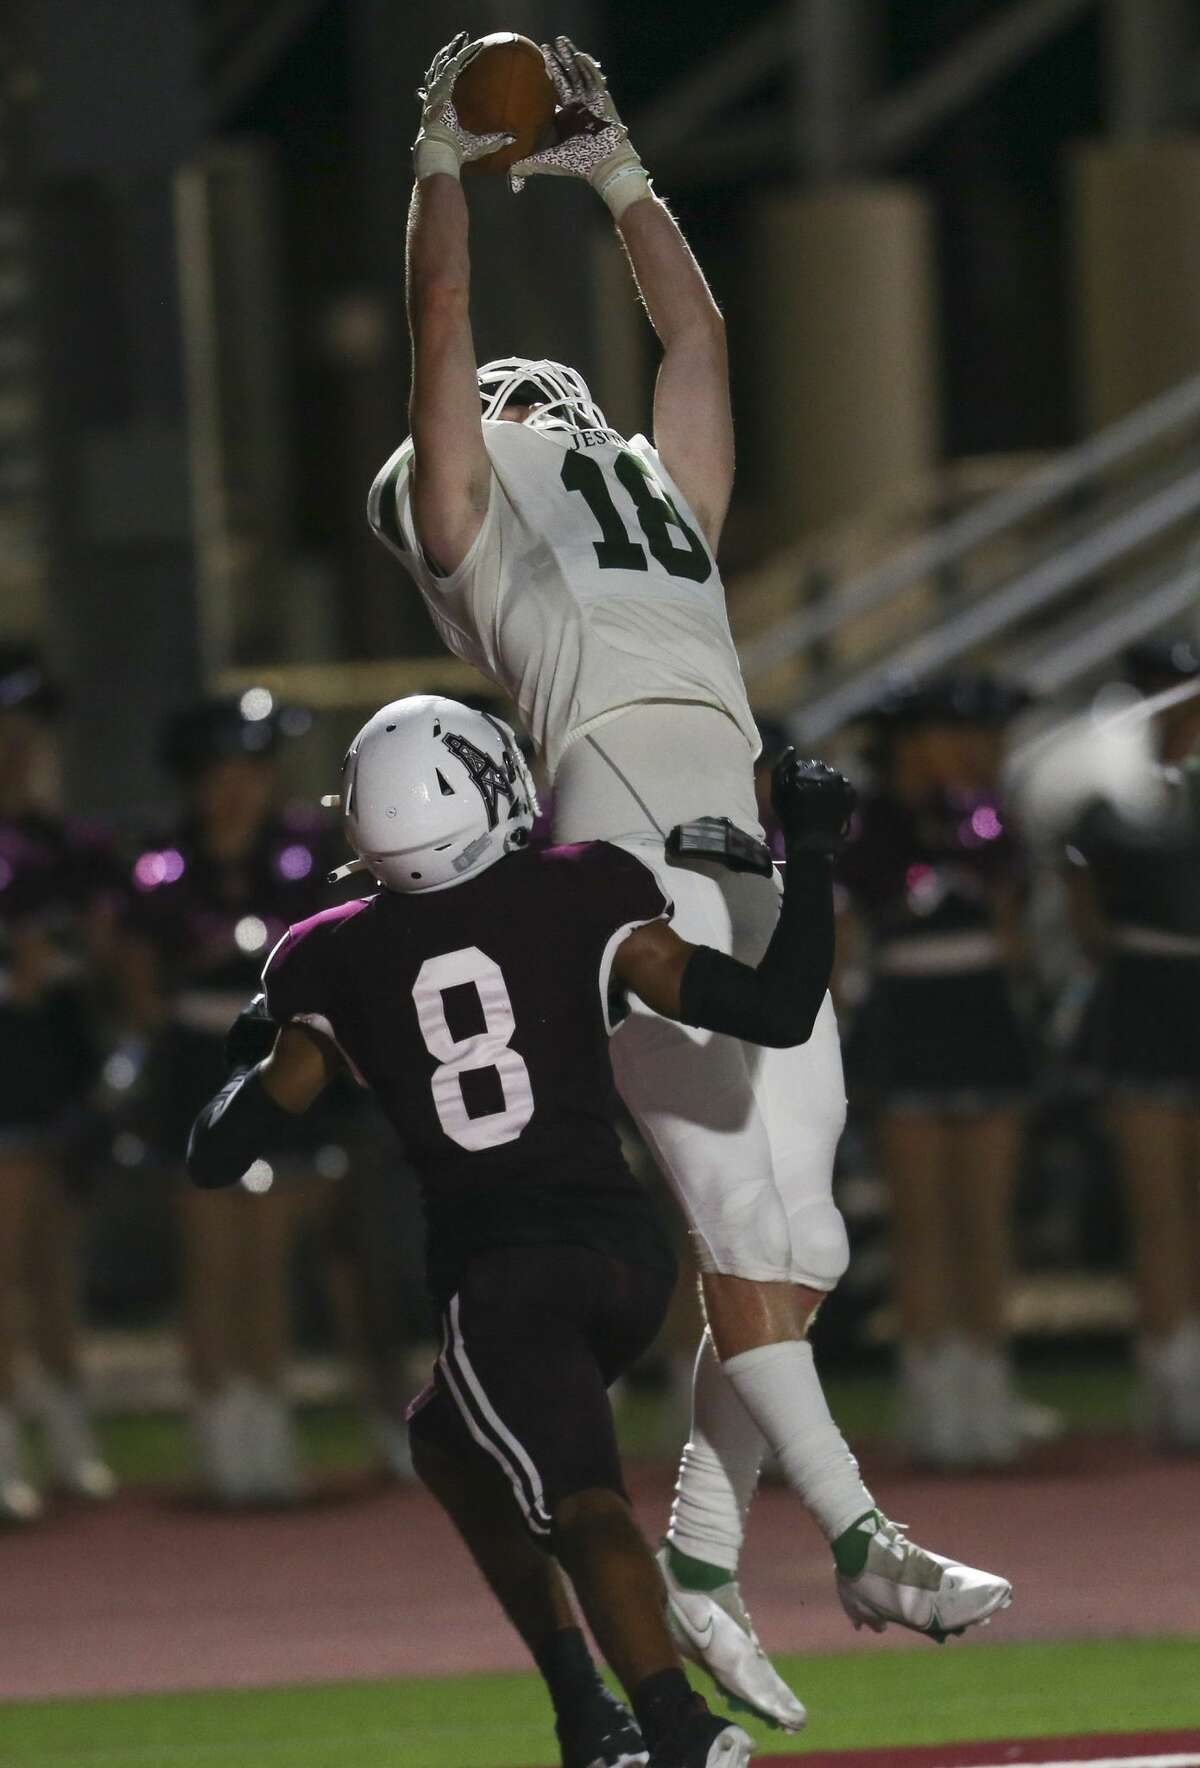 Strake Jesuit Fighting Crusader tight end Thomas Jewett #18 catches a 14 yard touchdown against Pearland Oilers defensive back Deveon Moses #8 in a high school football game on September 24, 2021 at The Rig in Pearland, TX.